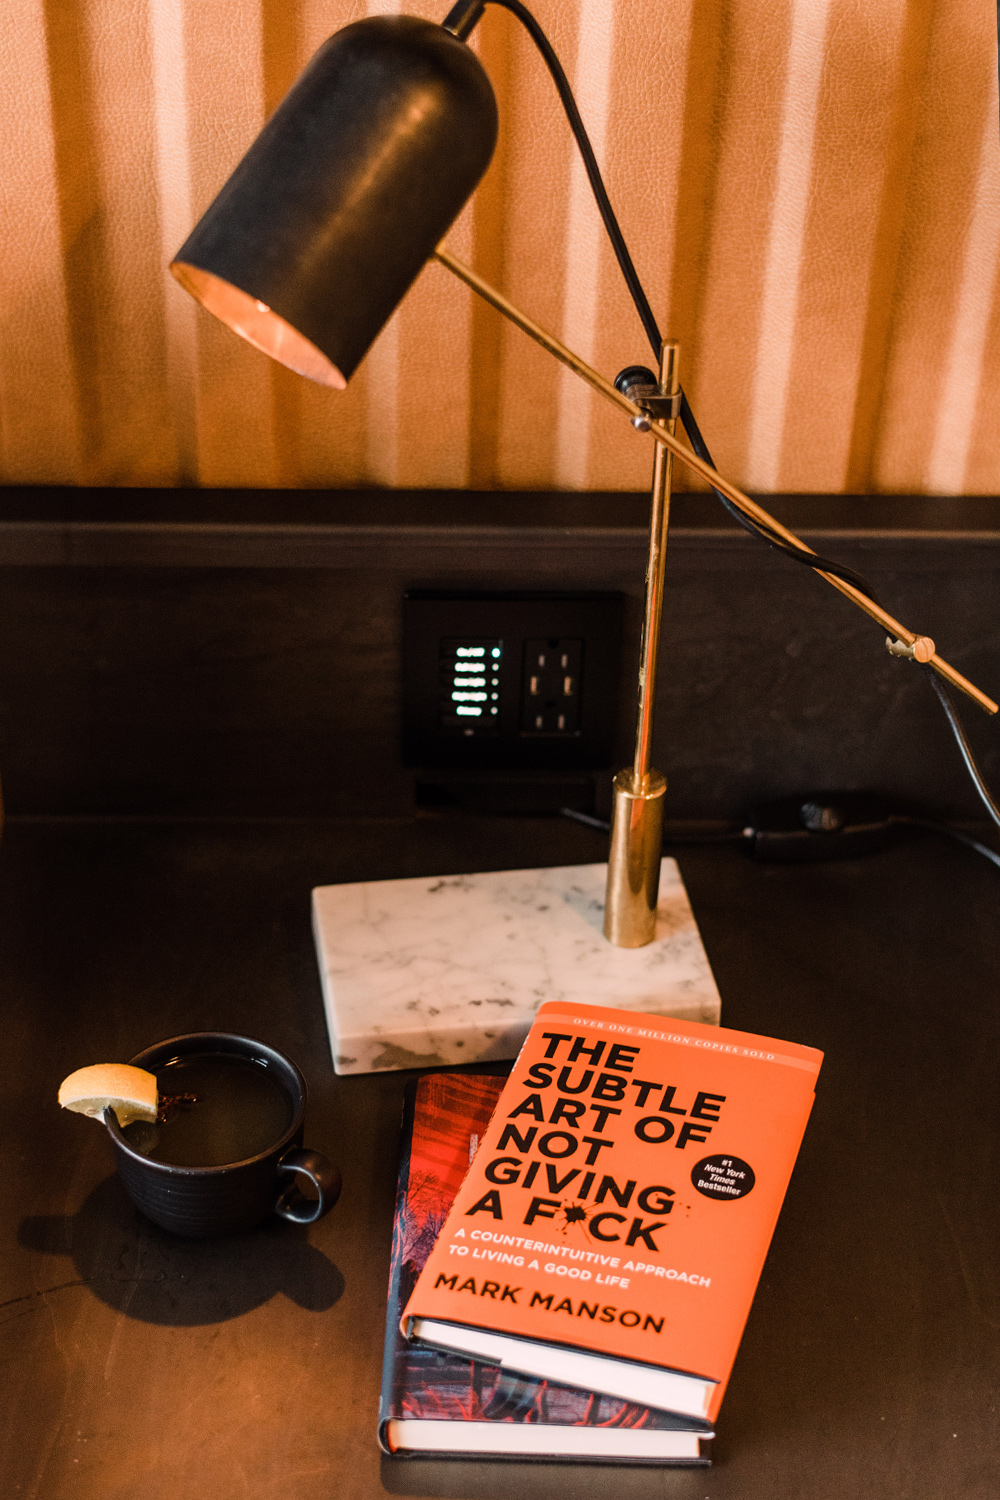 January 2018 Reading List | The Stripe | The Subtle Art of Not Giving a F*ck.